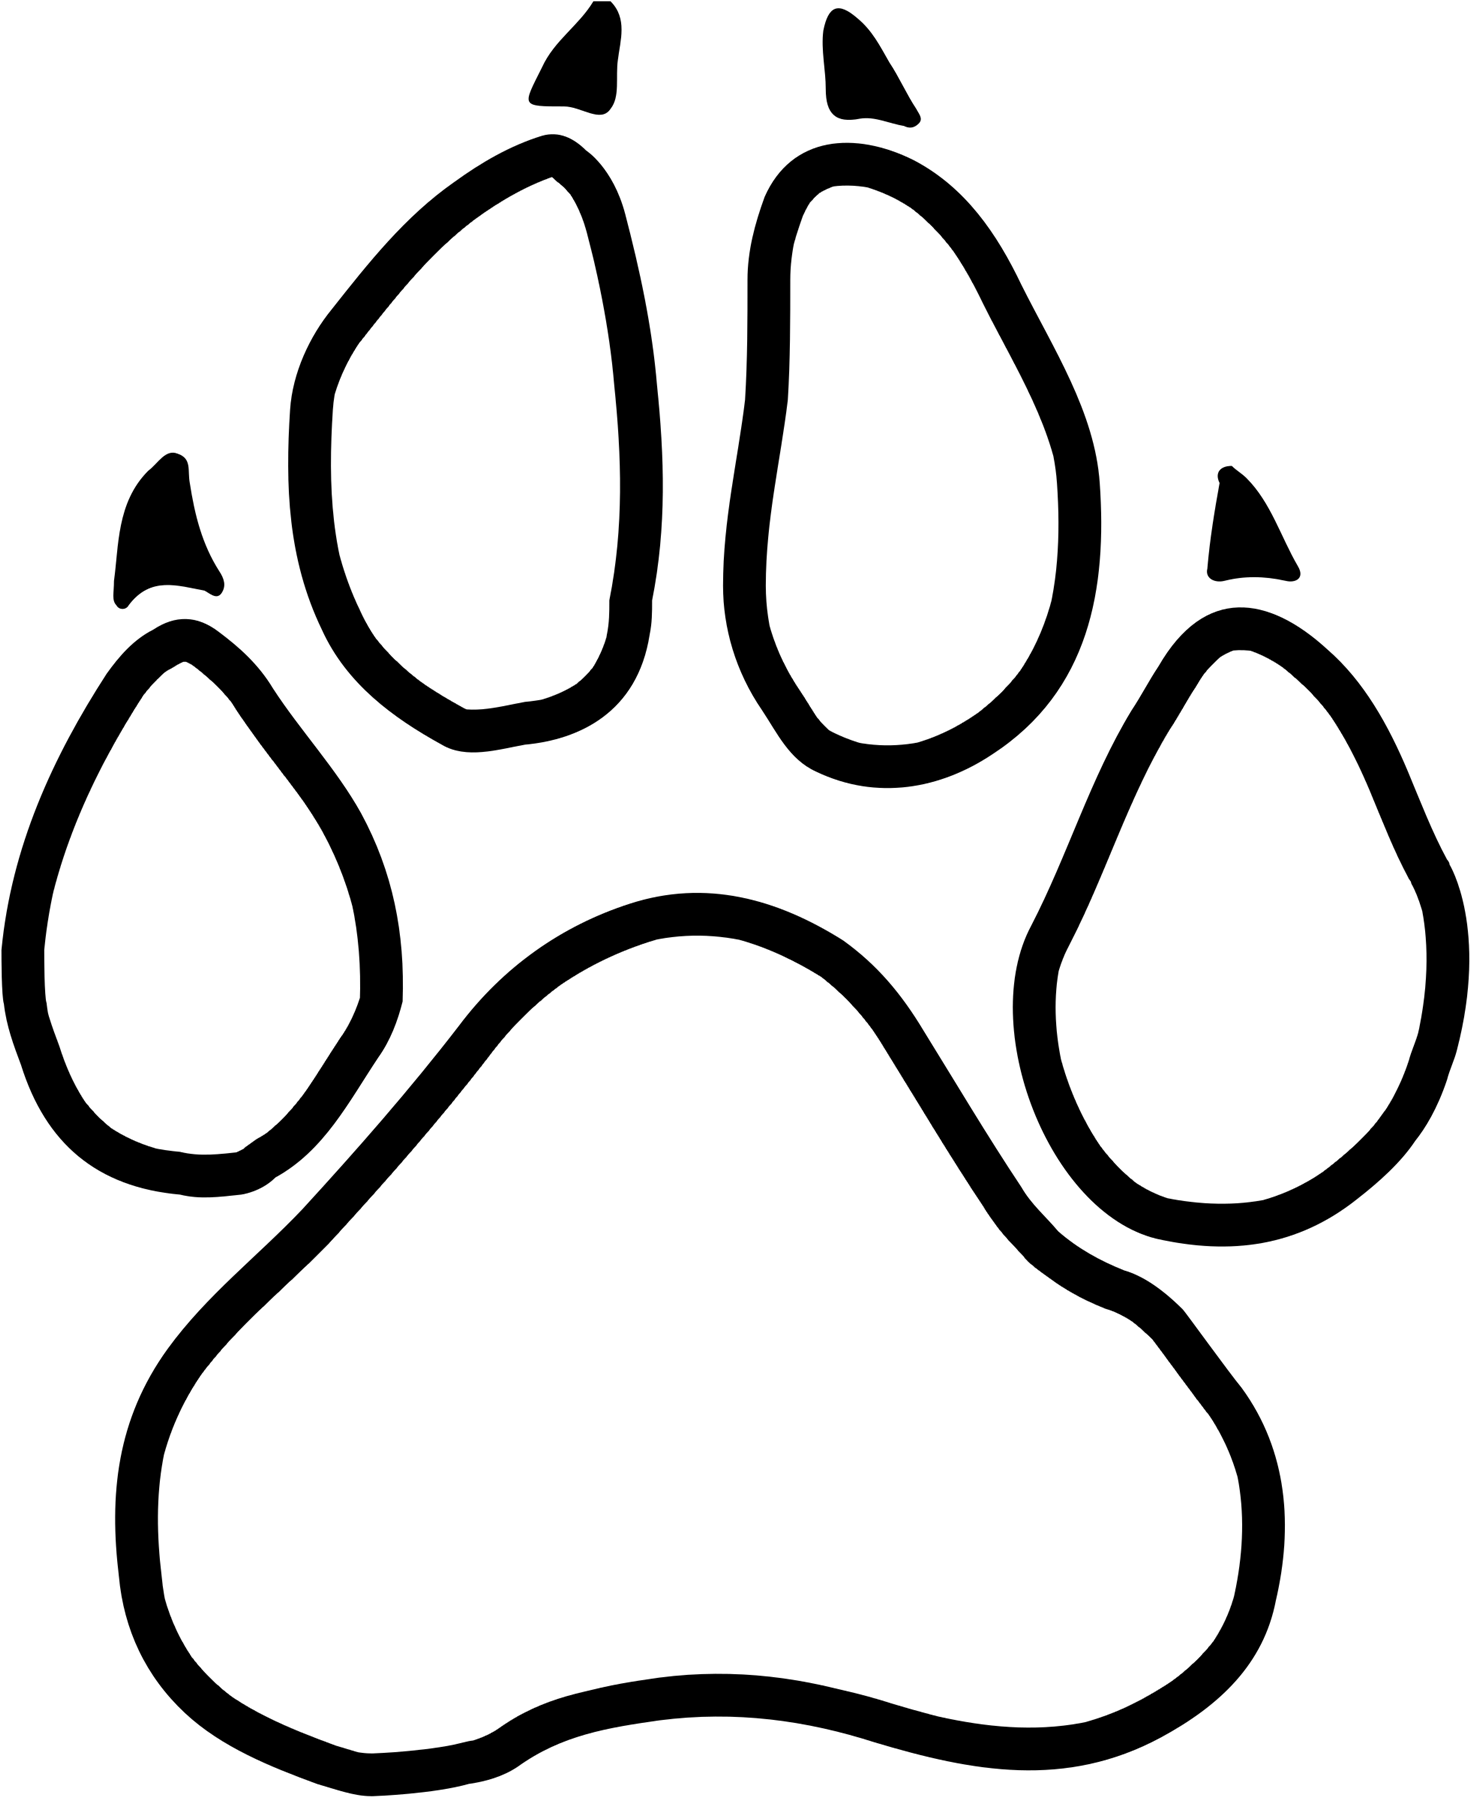 Download Graphic Of A Little Paw Print Panther Paw Print Logo Png Full Size Png Image Pngkit ✓ free for commercial use ✓ high quality images. panther paw print logo png